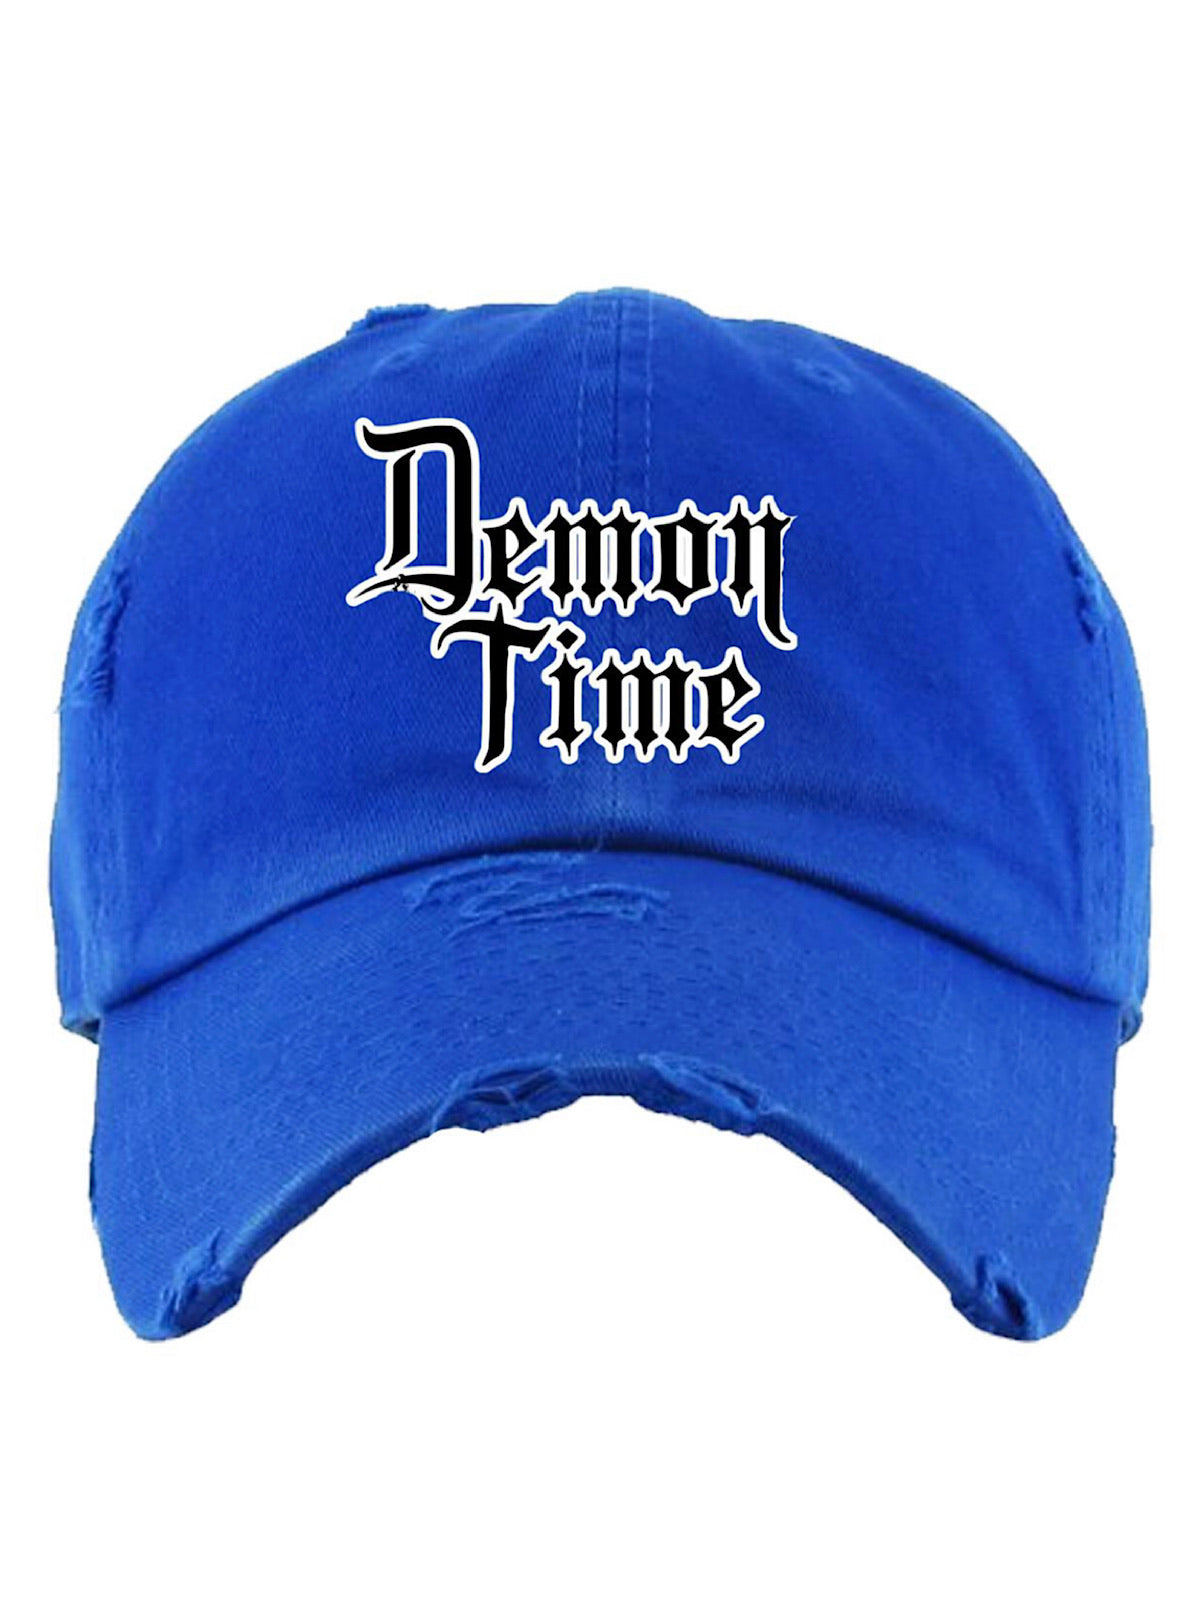 PG Apparel Hat - Demon Time - Royal Blue